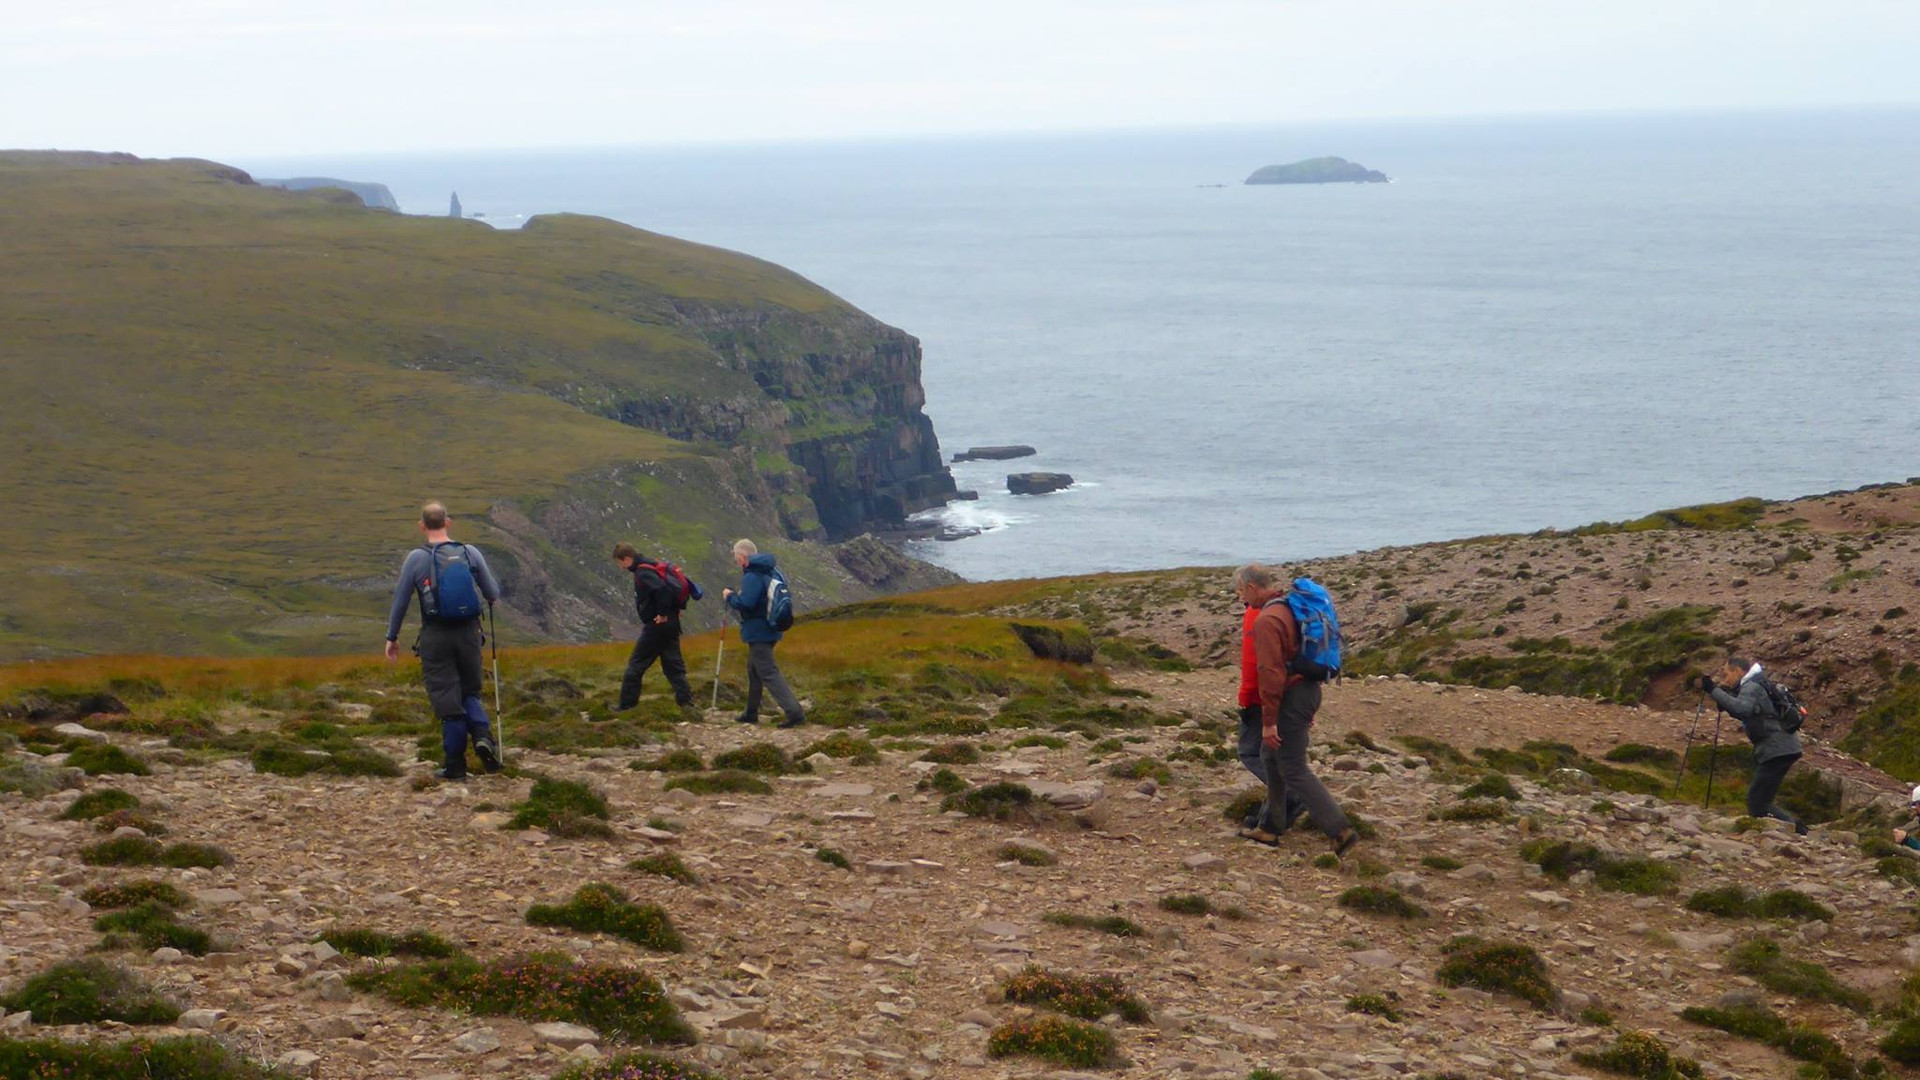 Trekking on the Cape Wrath trail